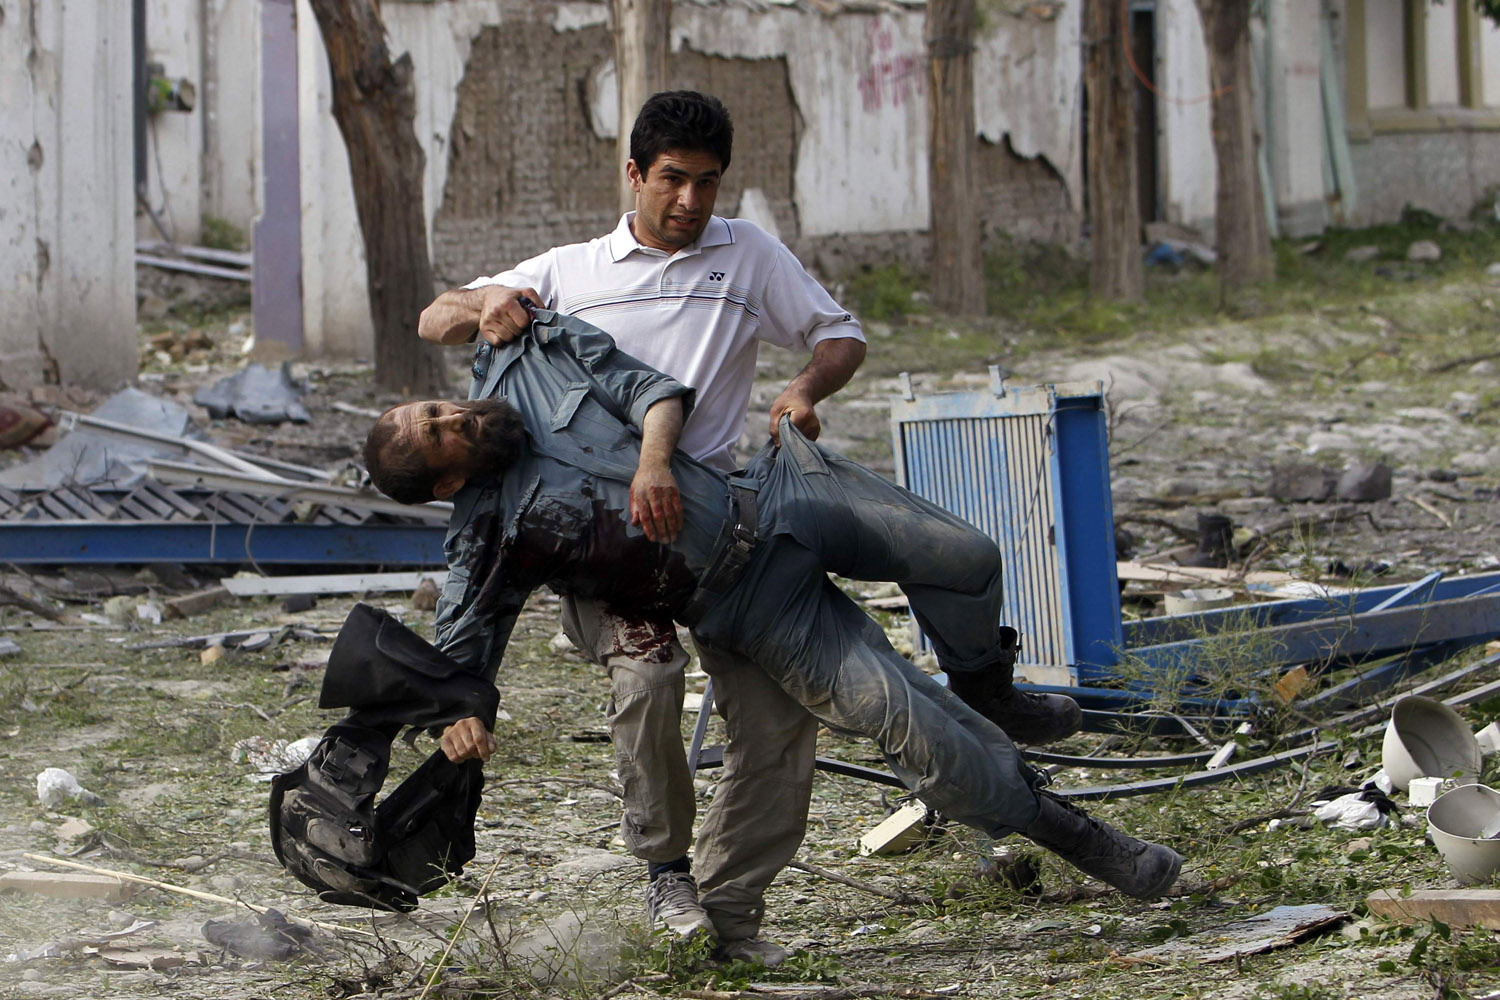 May 24, 2013. A wounded Afghan policeman is carried away from the site of an explosion in Kabul.